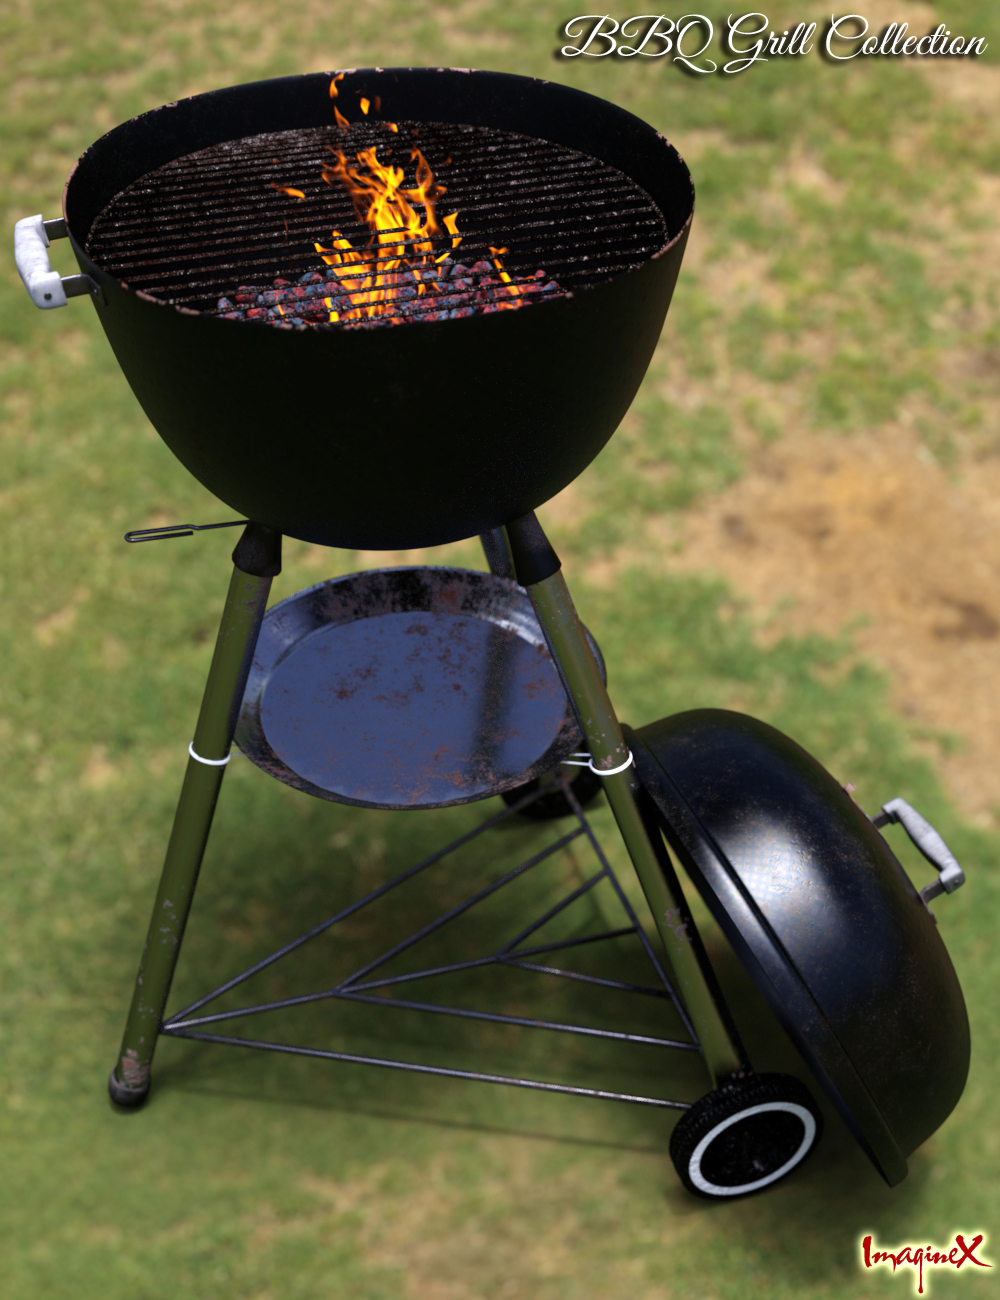 BBQ Grill Collection by: ImagineX, 3D Models by Daz 3D